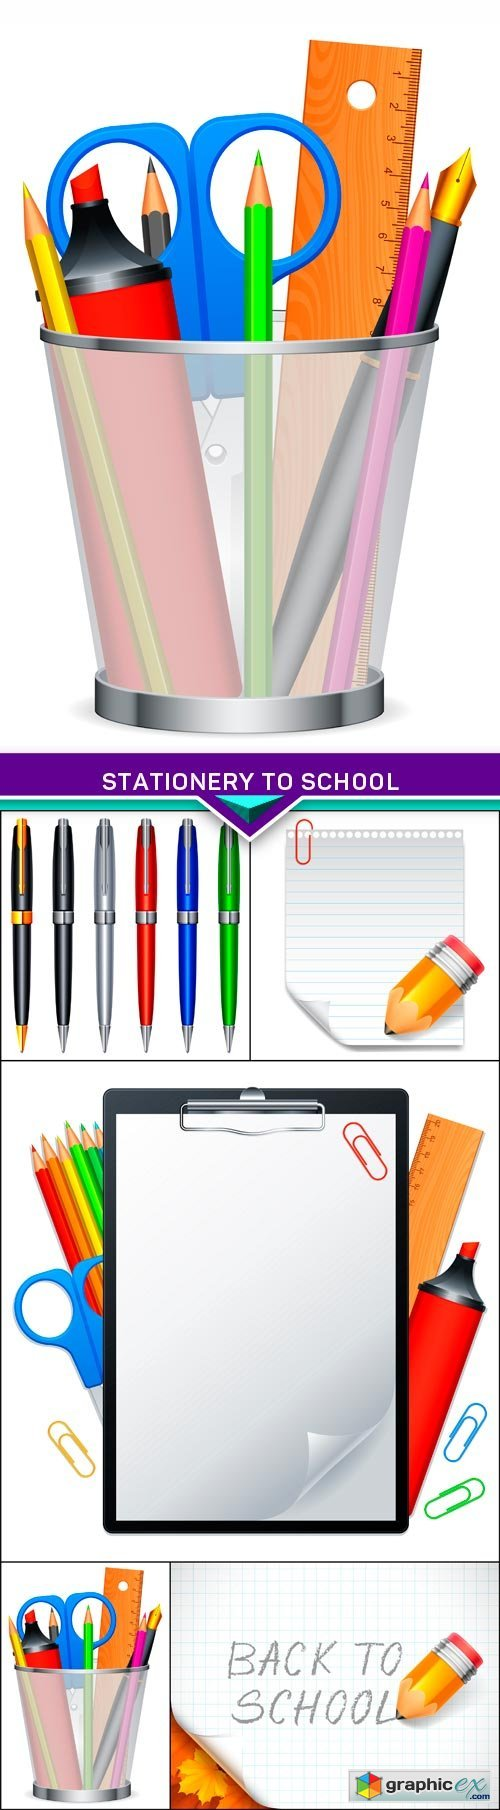 Stationery to school 5X EPS